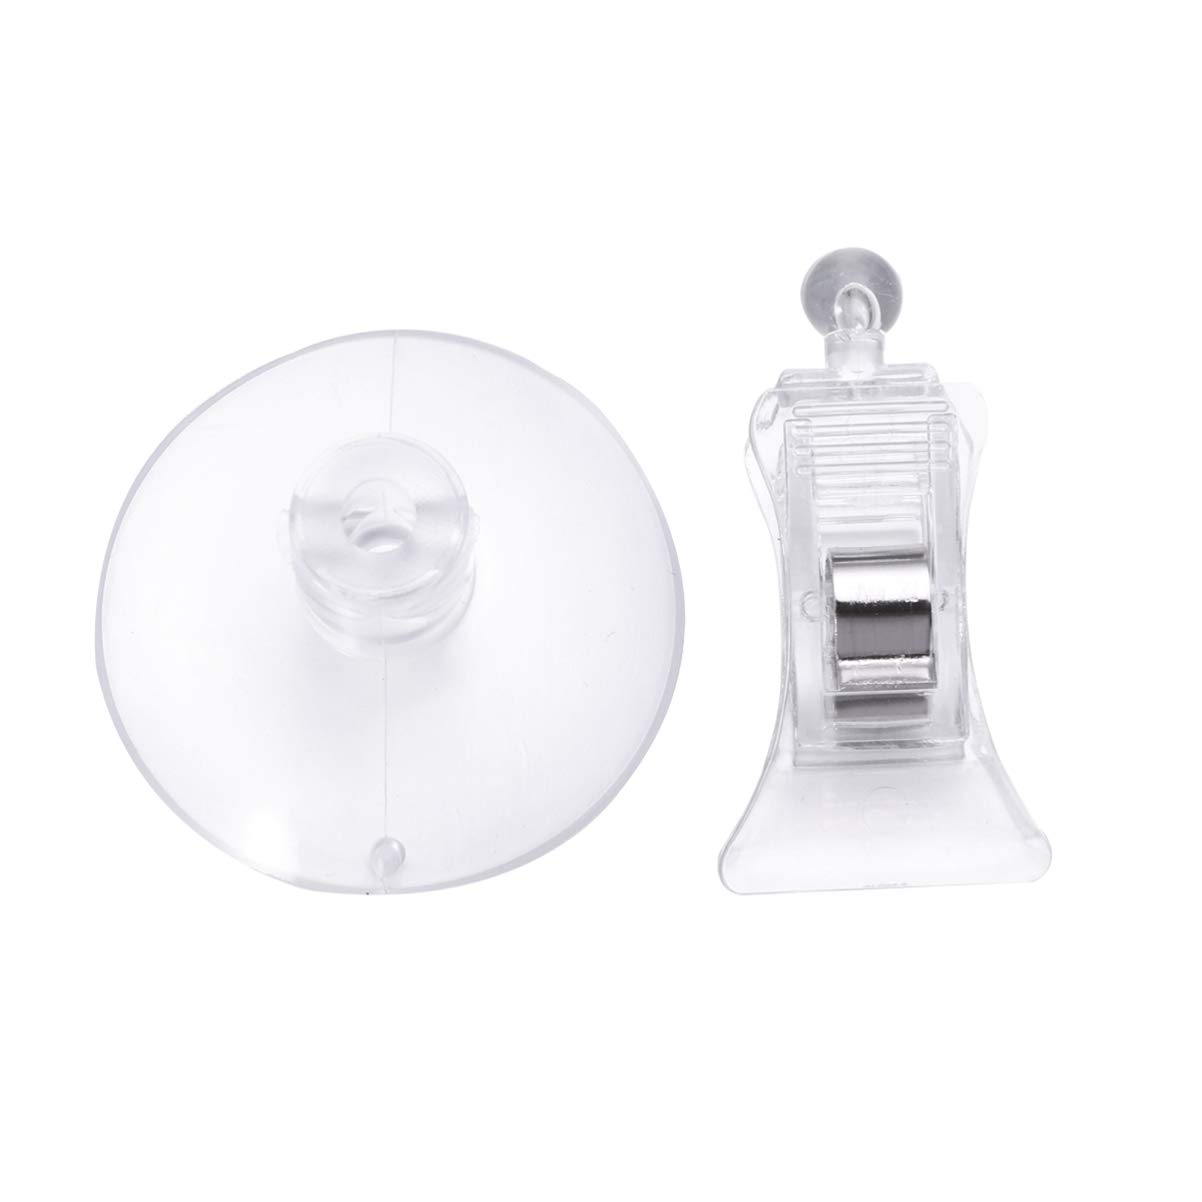 Balacoo 3pcs Fishes Veggie Seaweed Suction Cup Clip Clear Waterproof Feed Holder Feeding Tool for Fish Tank Aquarium Accessories